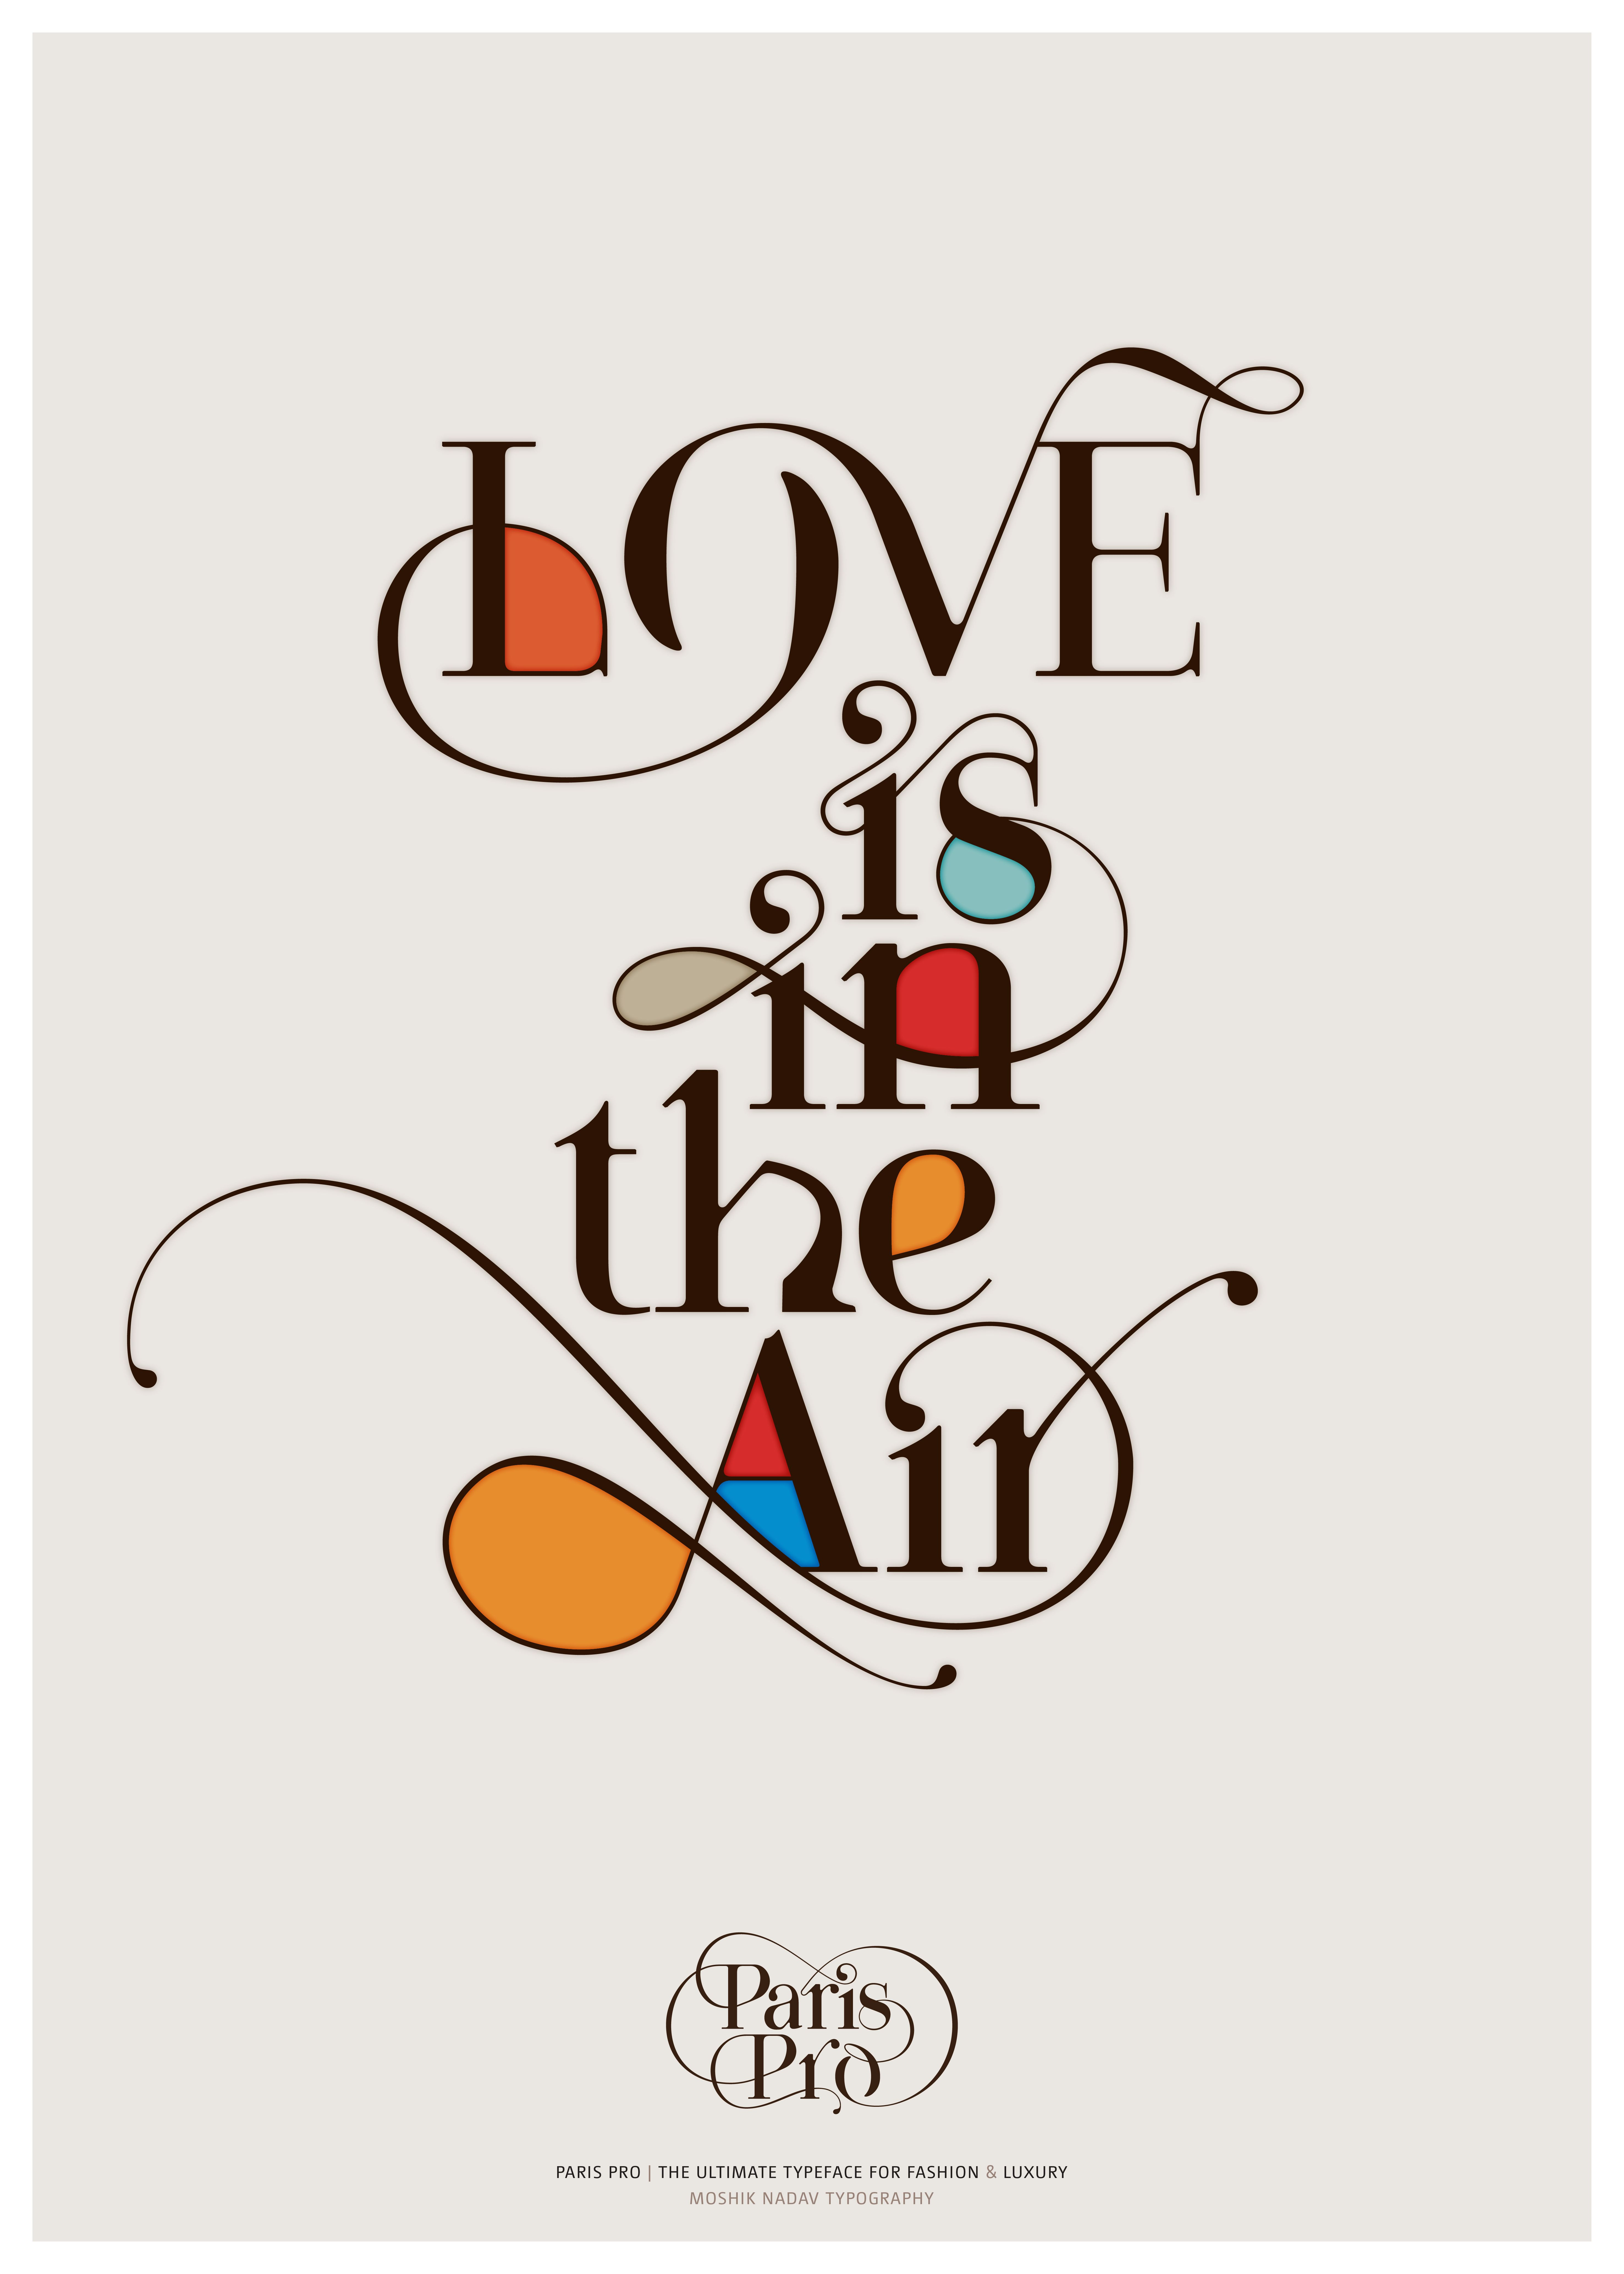 Love Is In The Air Made With The New Paris Pro Typeface With So Much Love Get Your Own Style